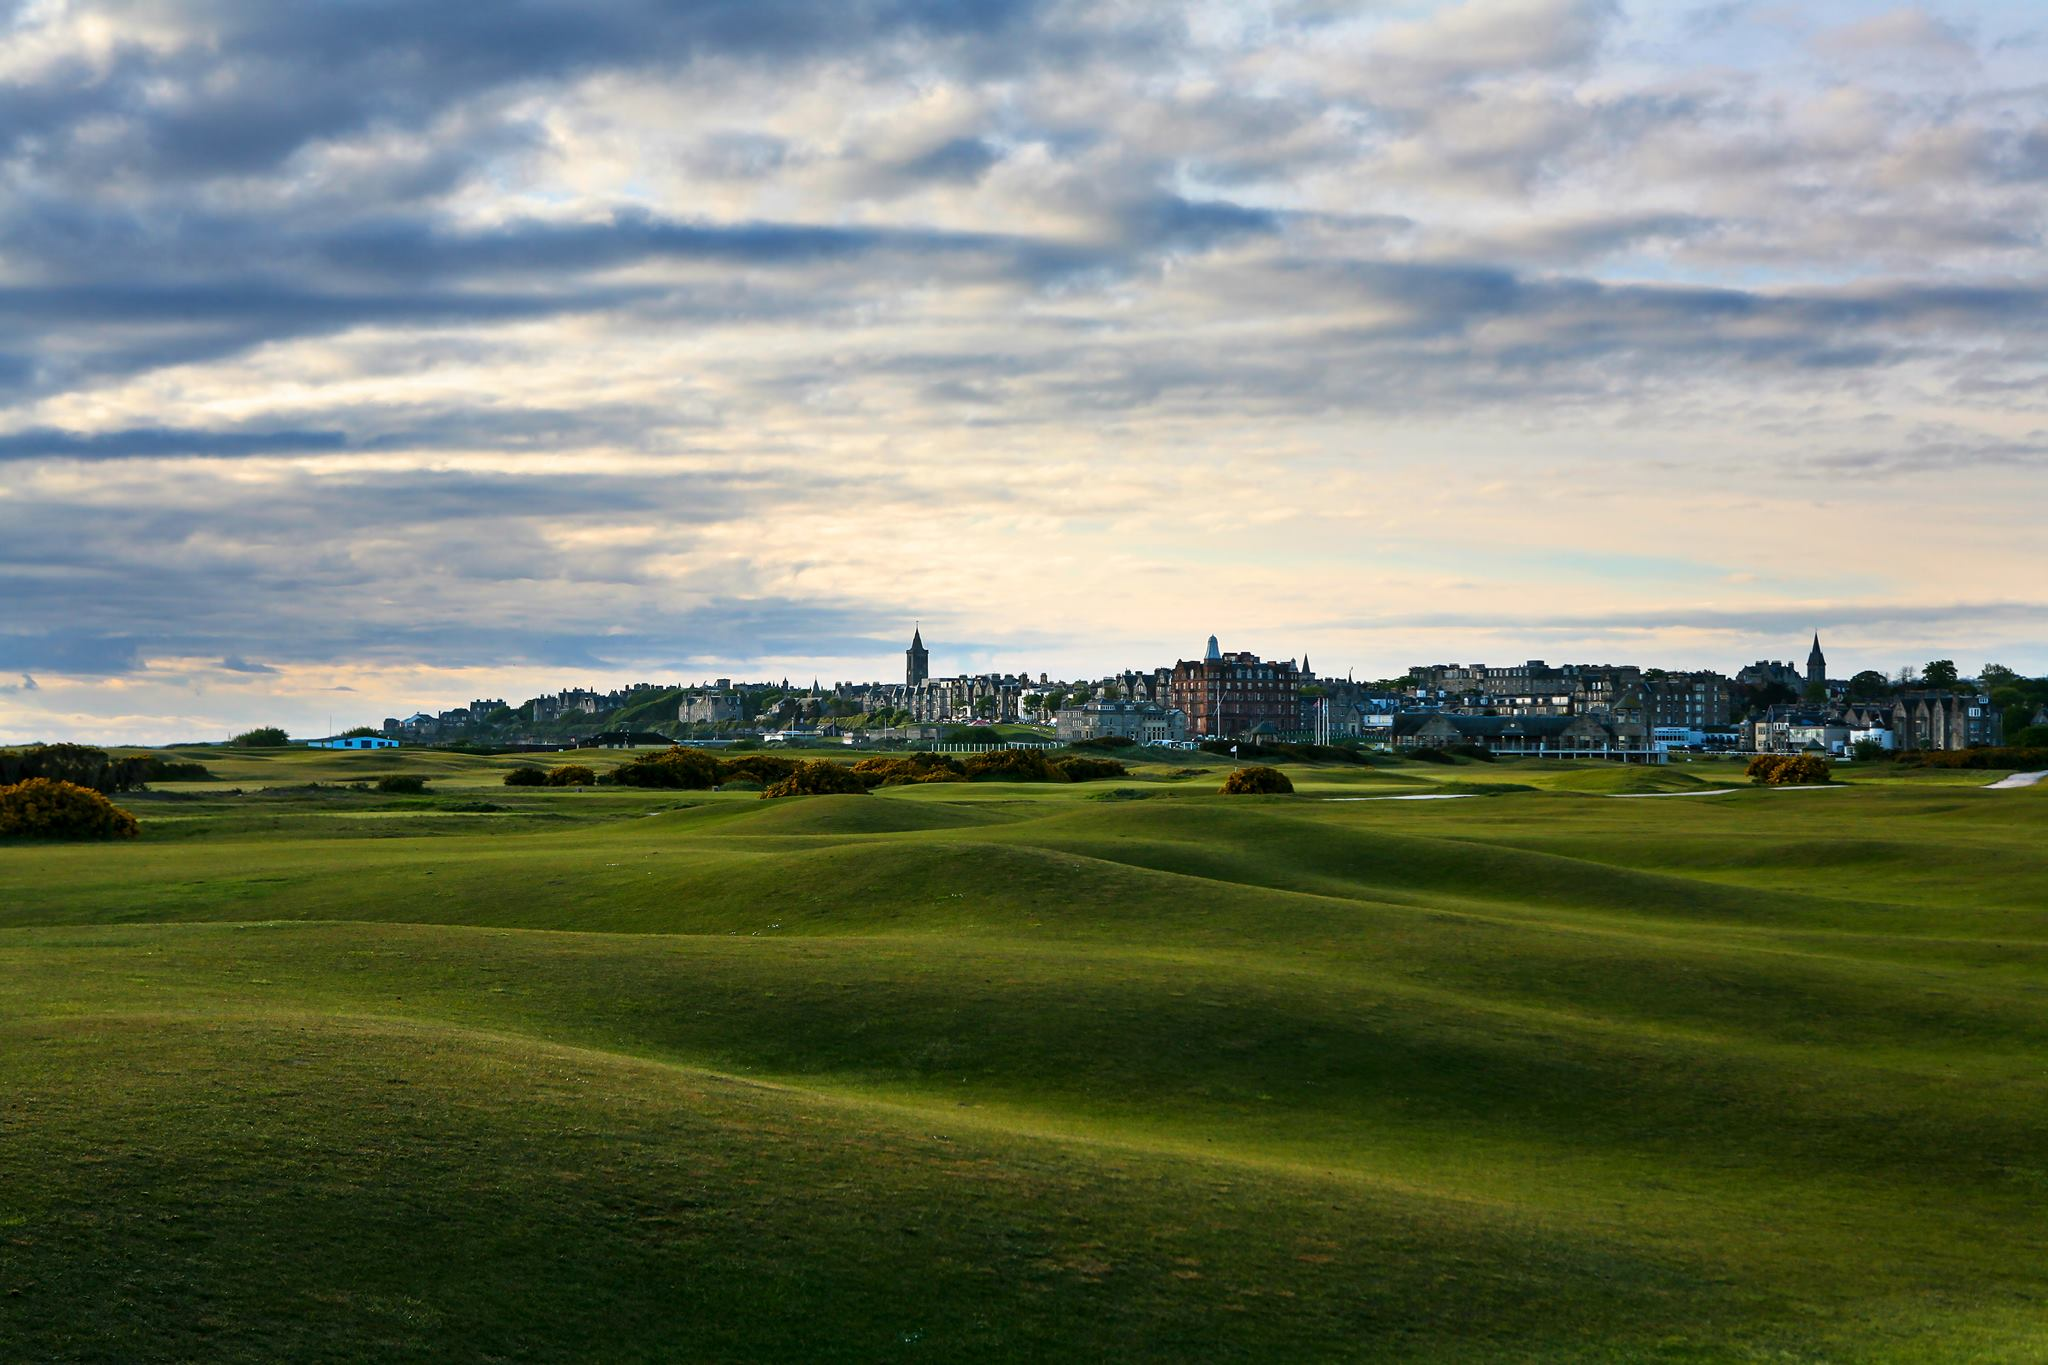 St Andrews golf course, Scotland, UK